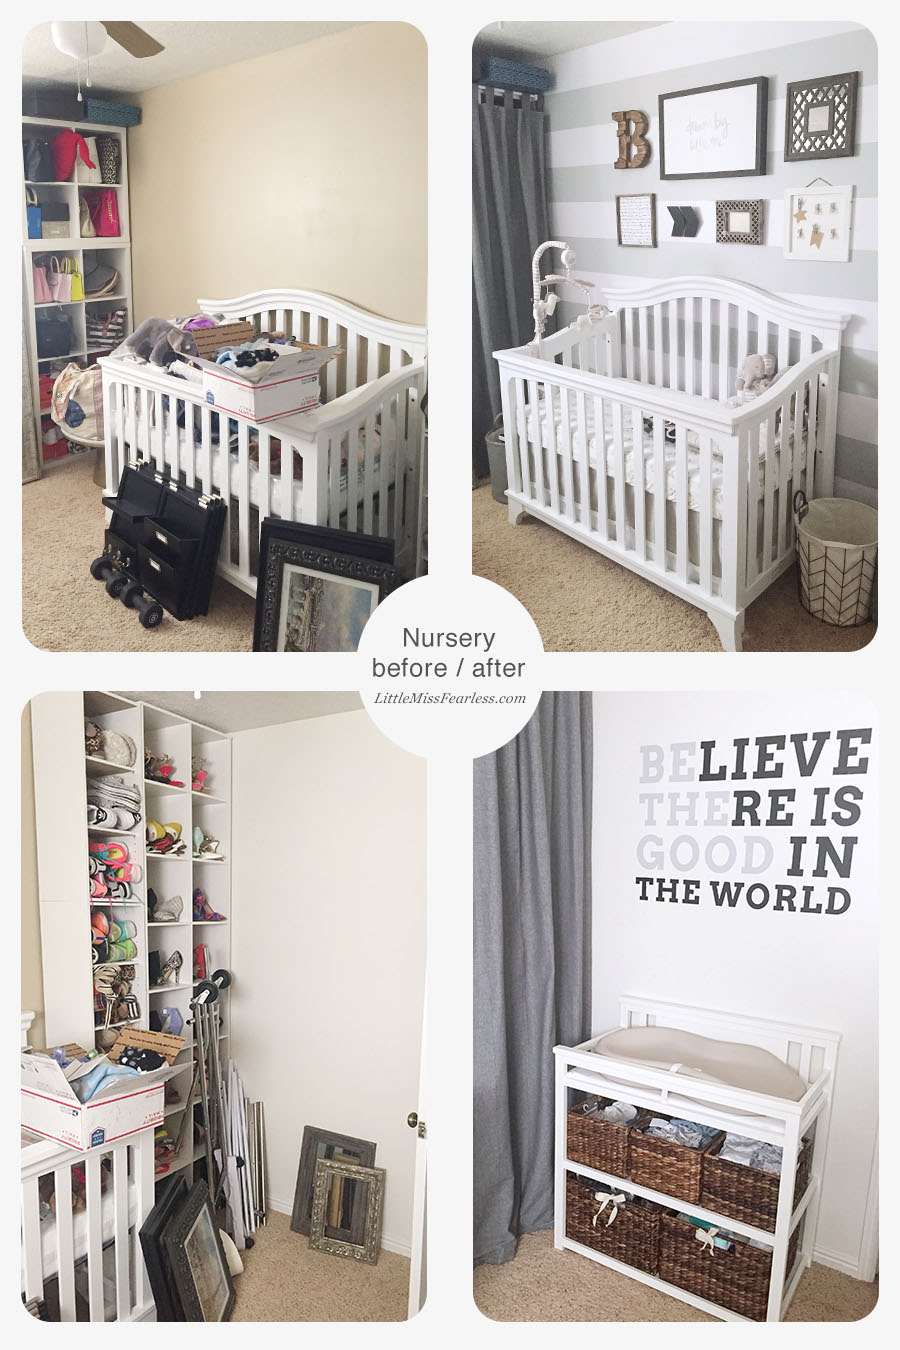 LittleMissFearless_baby-nursery-before-after-1